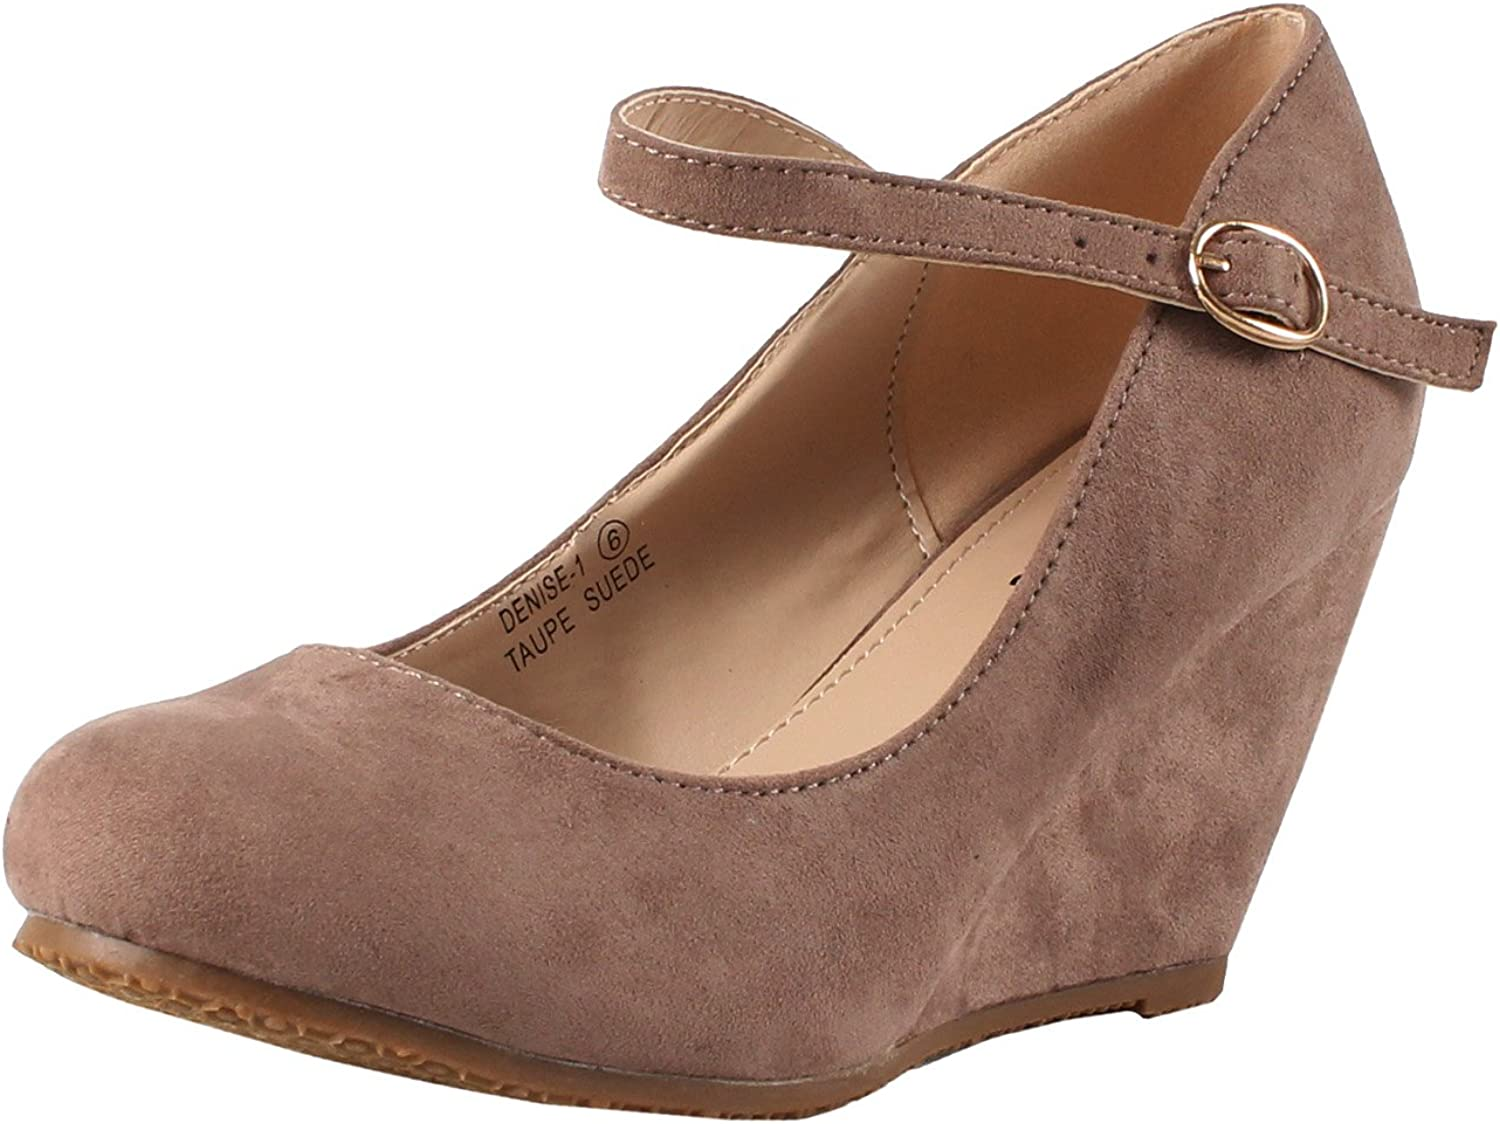 Bella Marie Denise-1 Women's Round Toe Wedge Heel Mary Jane Squeaky Strap Sue.